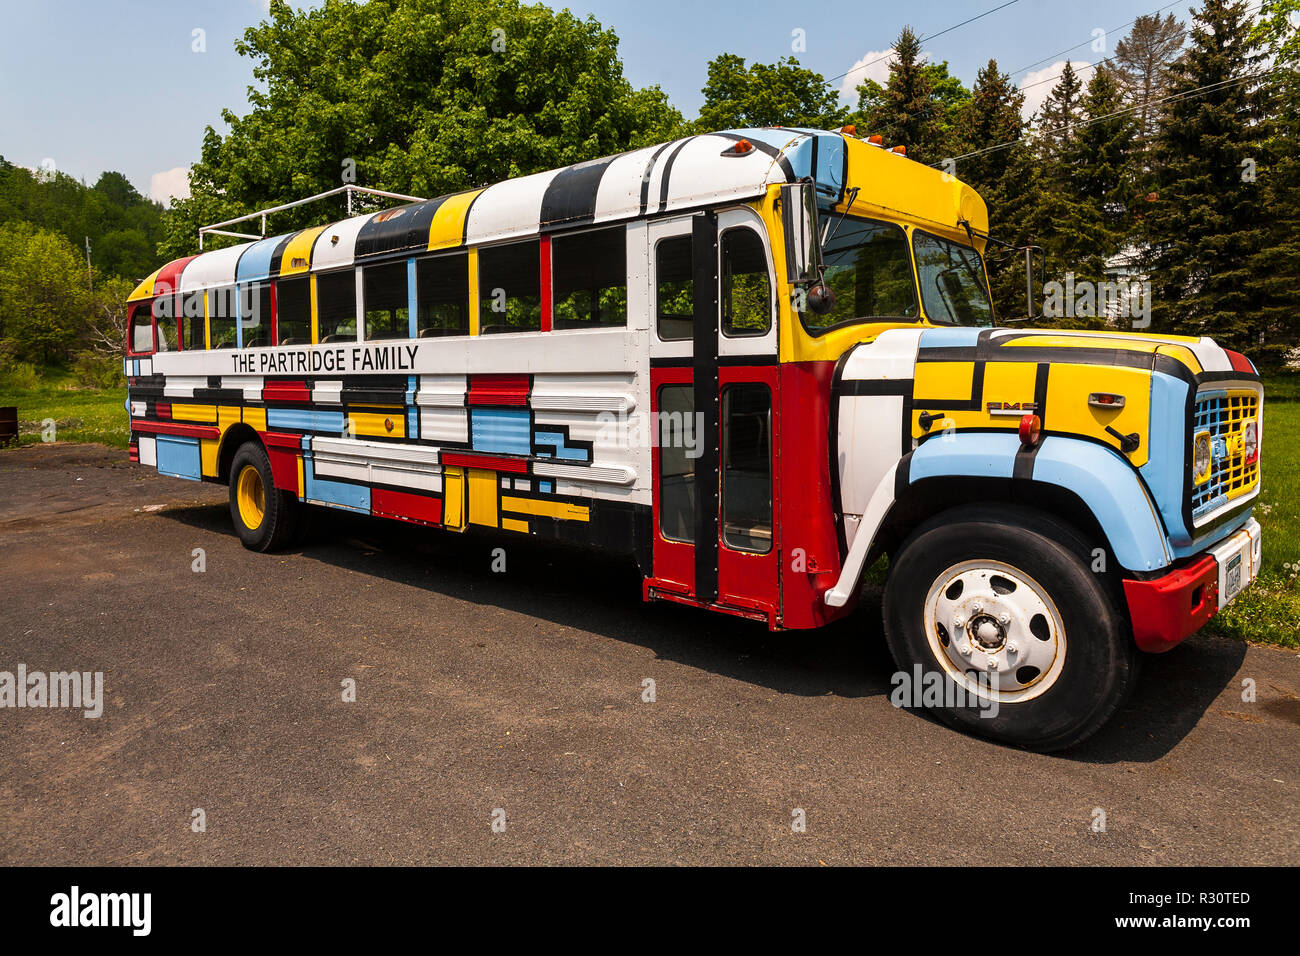 beck's blog: Partridge Family; Mondrian; I think I Love ... |Partridge Family Bus Pattern